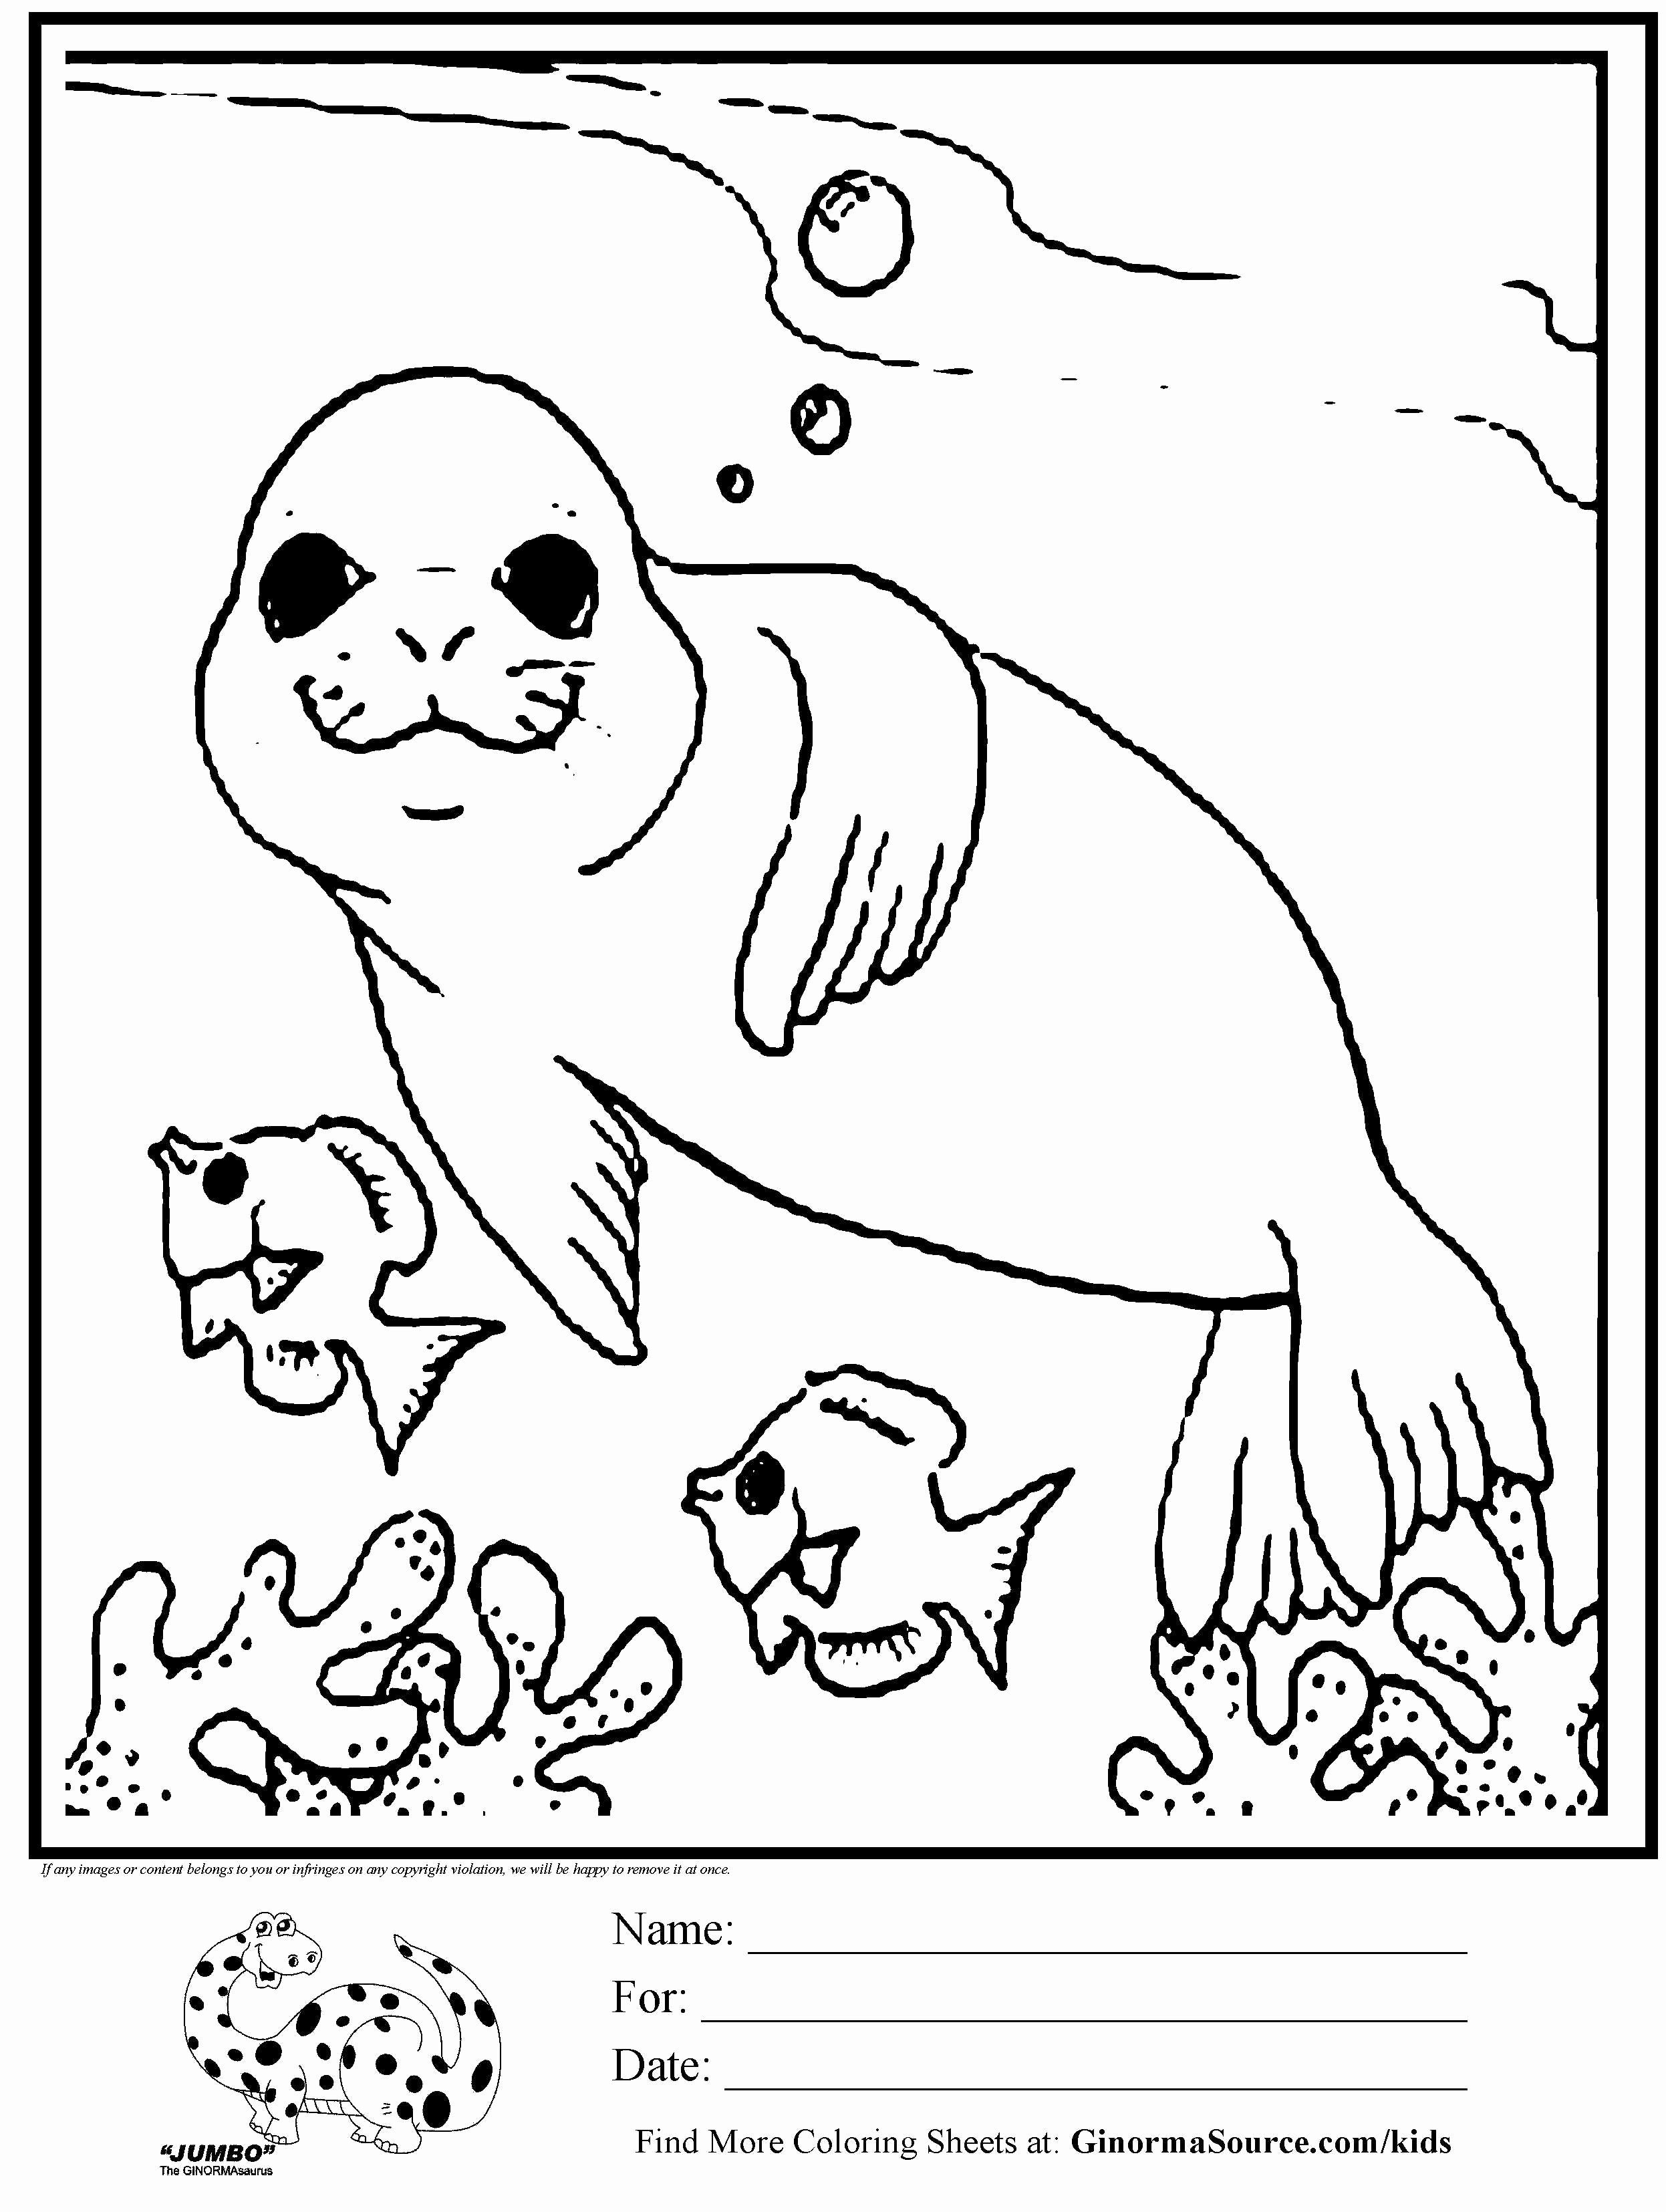 Coloring forest Animals | Bird coloring pages, Halloween ...